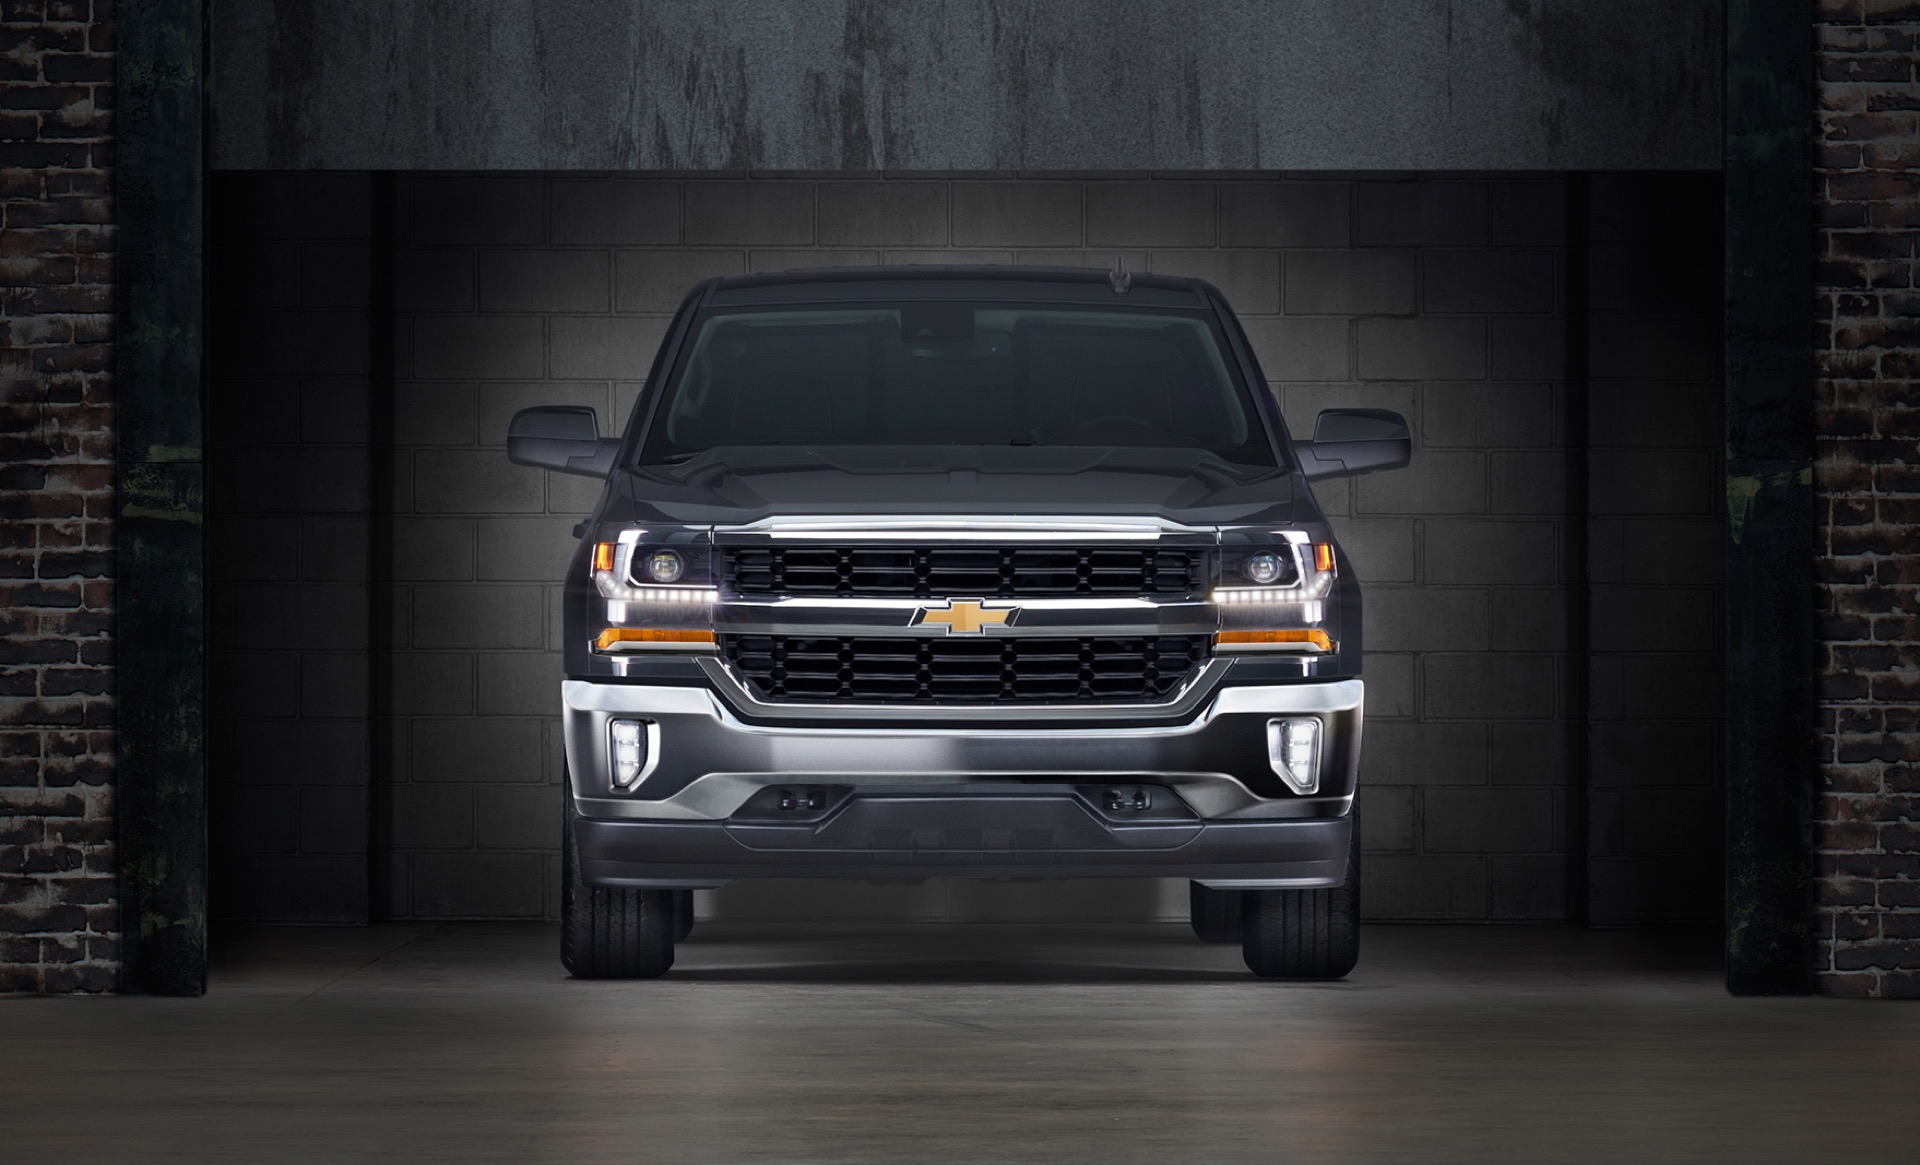 chevrolet rating cars front motor and reviews doublecab truck wt trend angular silverado